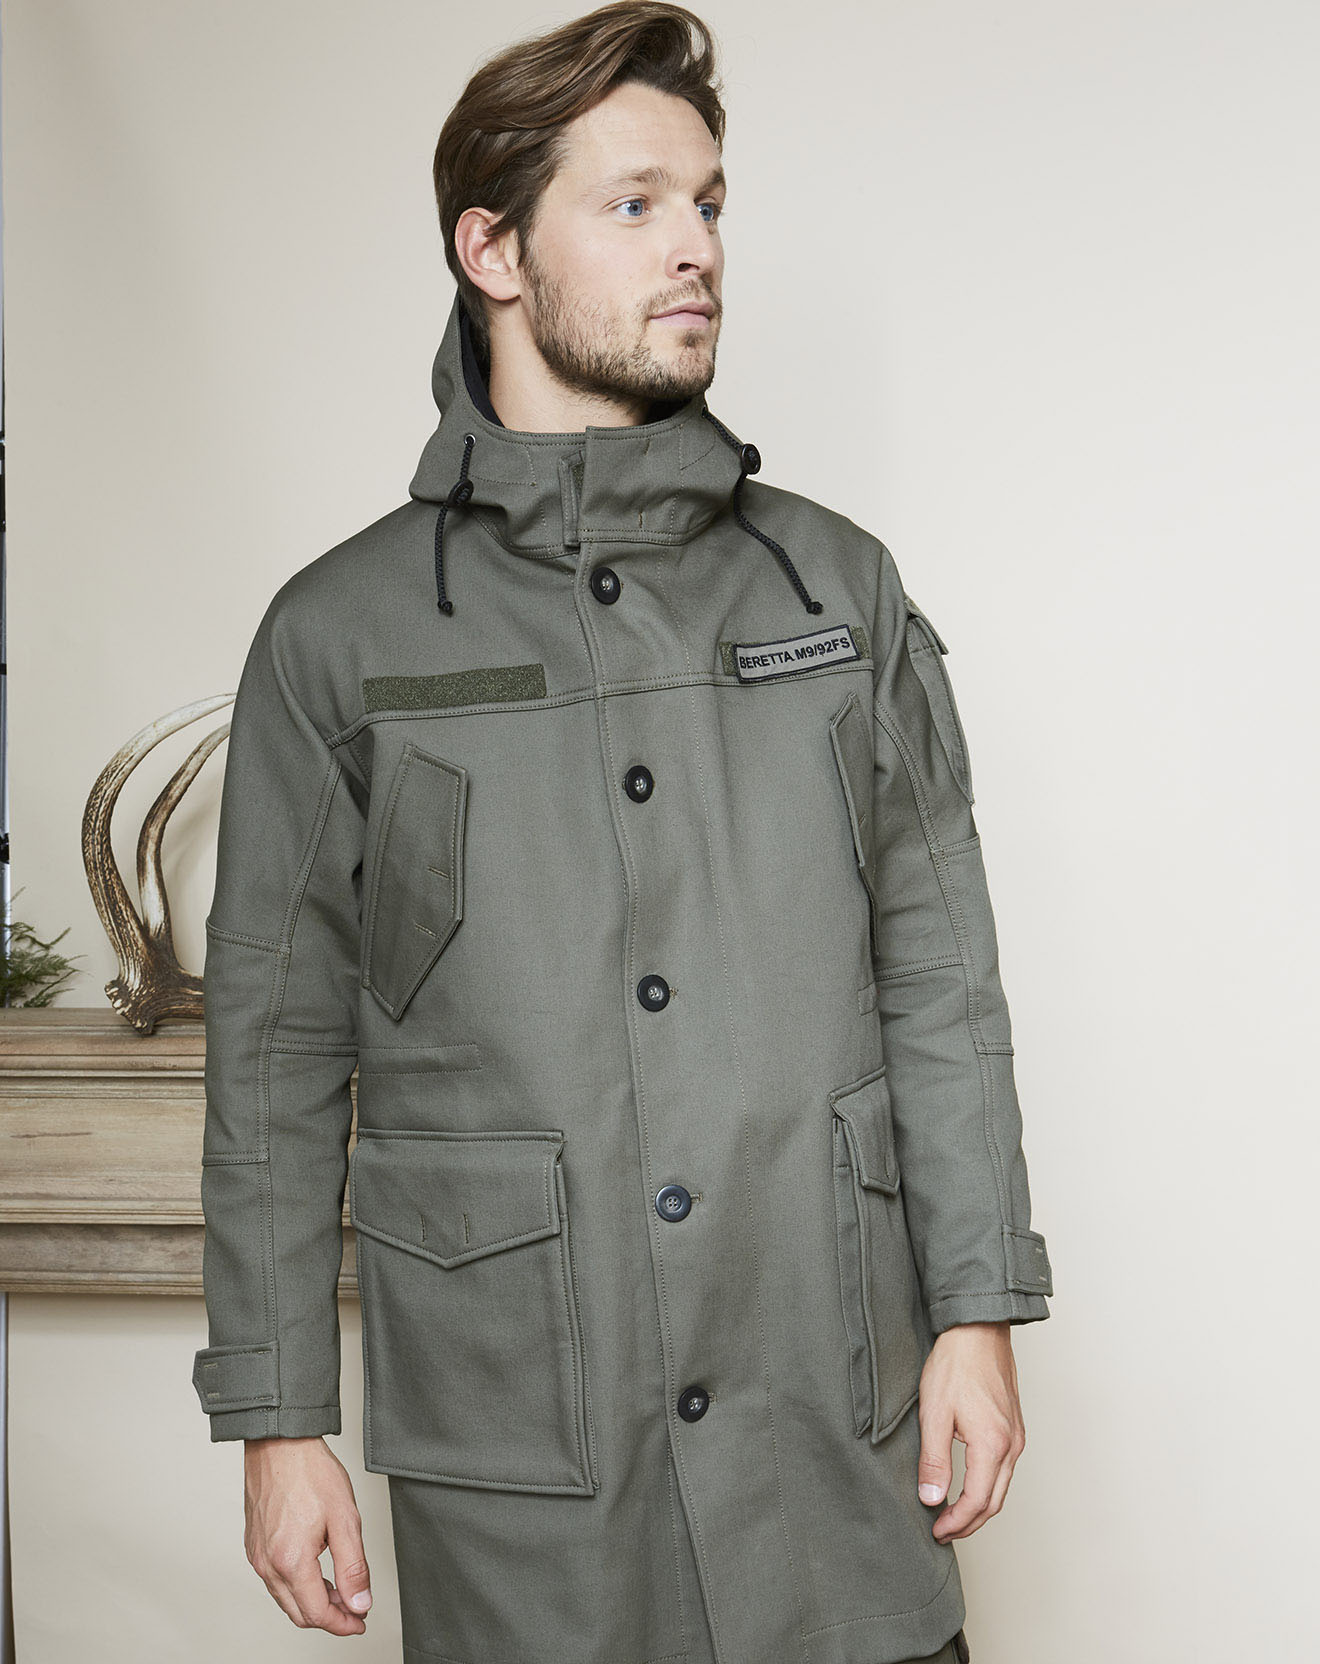 Manteau Hop Military 3 in 1 vert olive